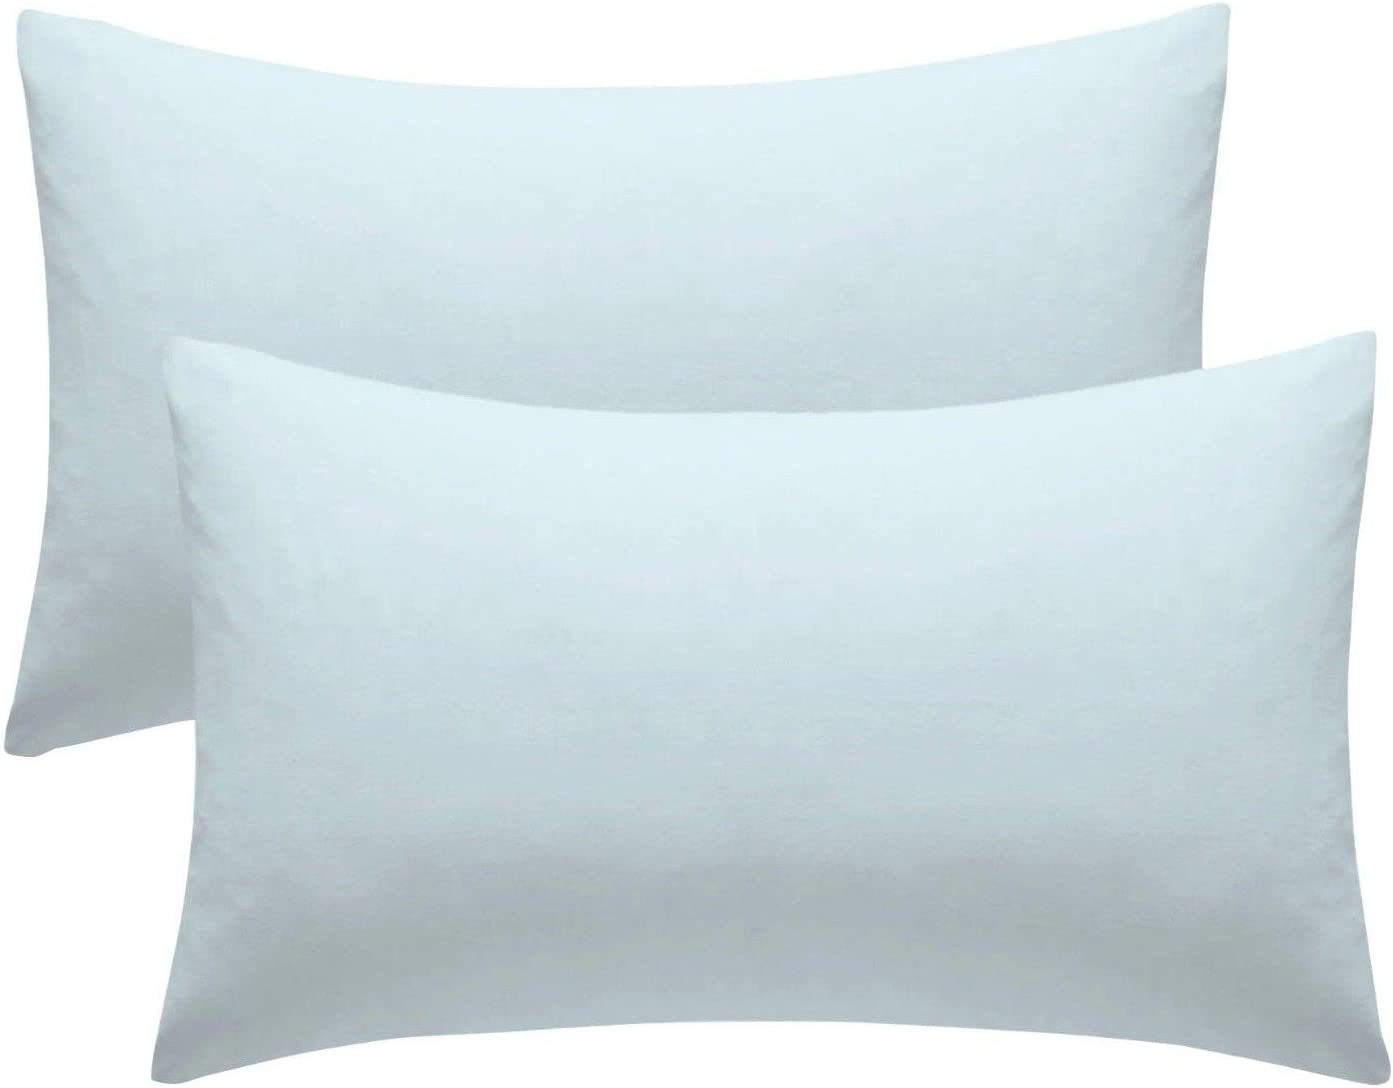 Wholesale 2 x Pillow Case Cases